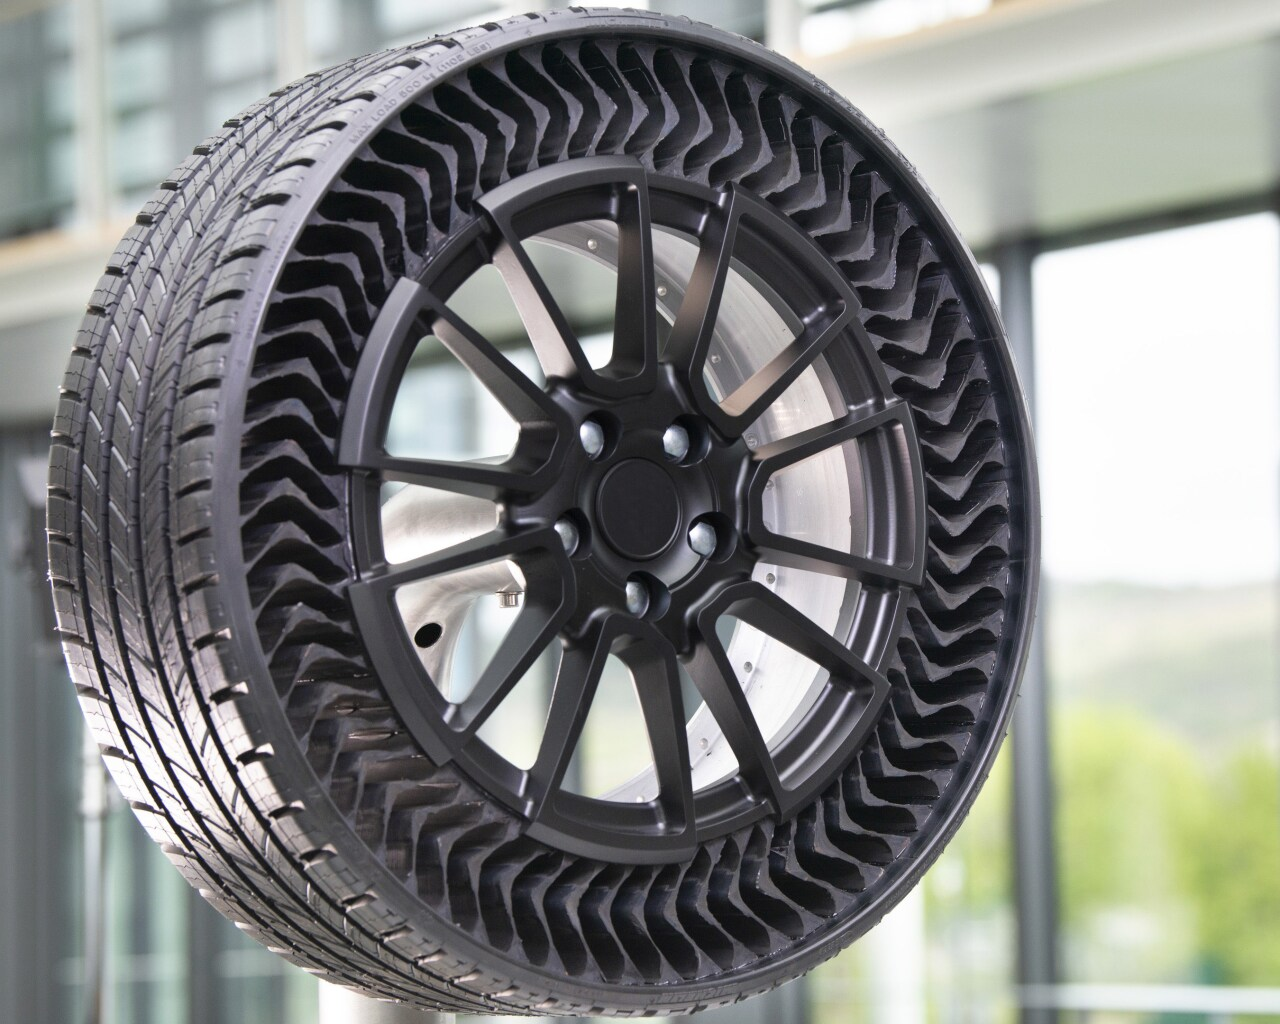 Michelin Uptis airless wheel